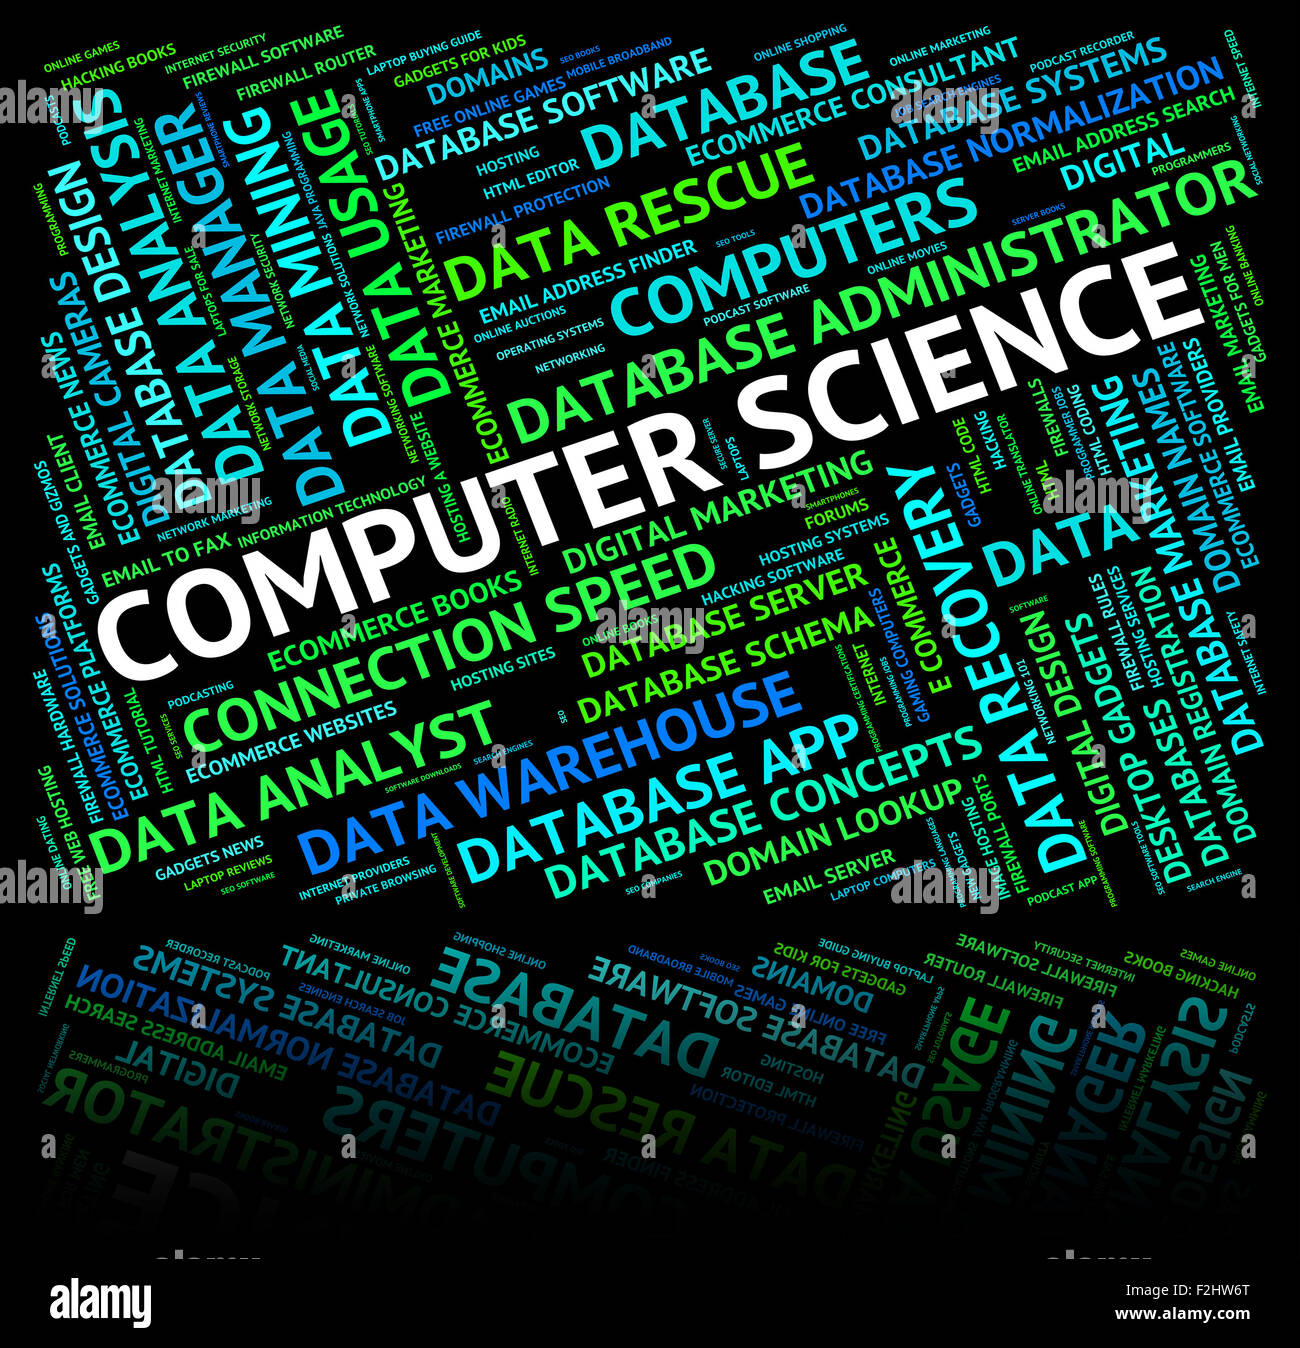 Computer Science: Computer Science Meaning Information Technology And Text